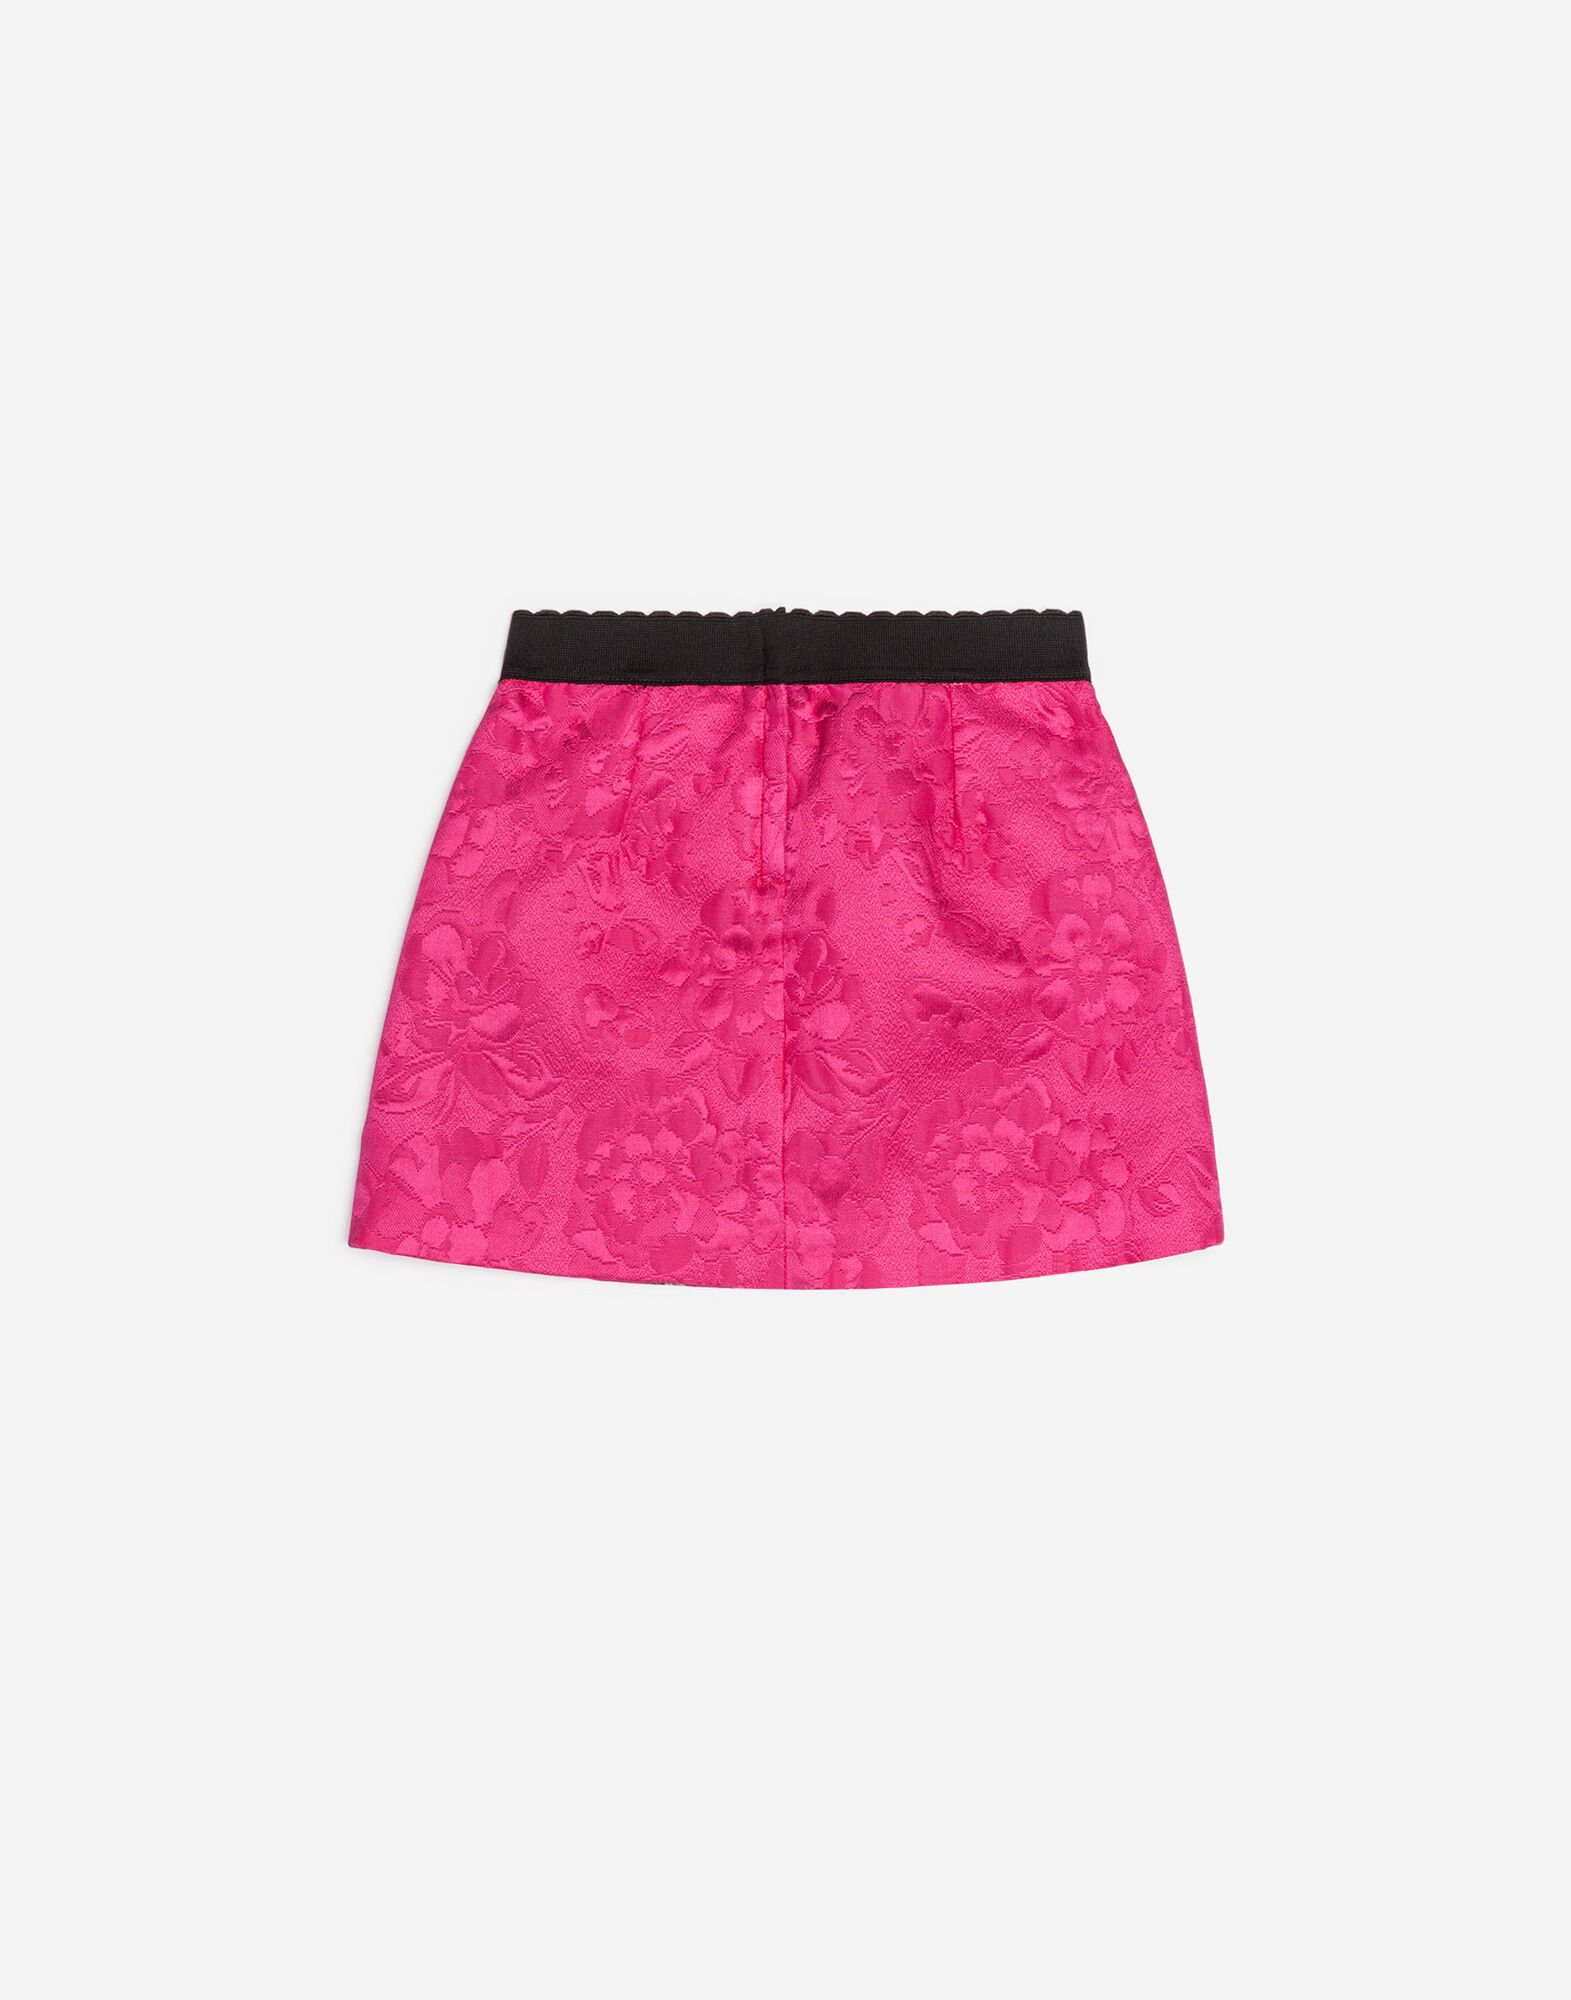 PRINTED BROCADE SKIRT